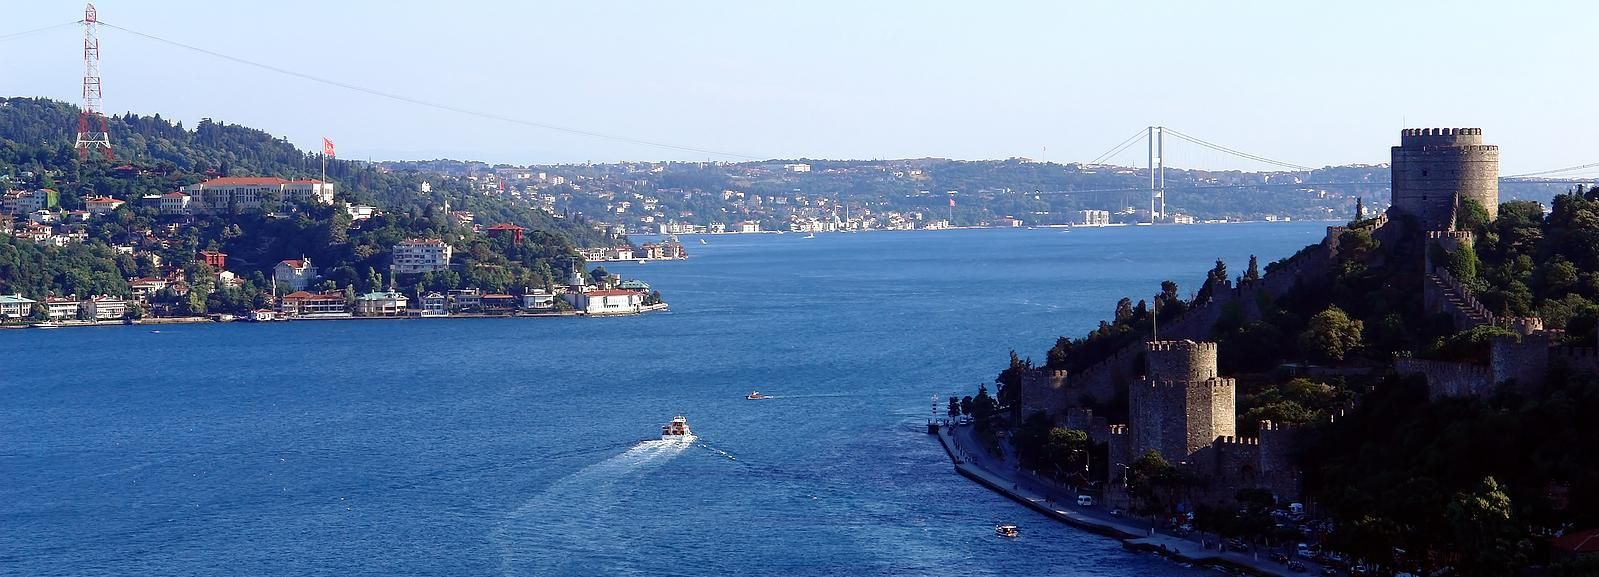 Istanbul: Bosphorus Boat Tour with Local Guide